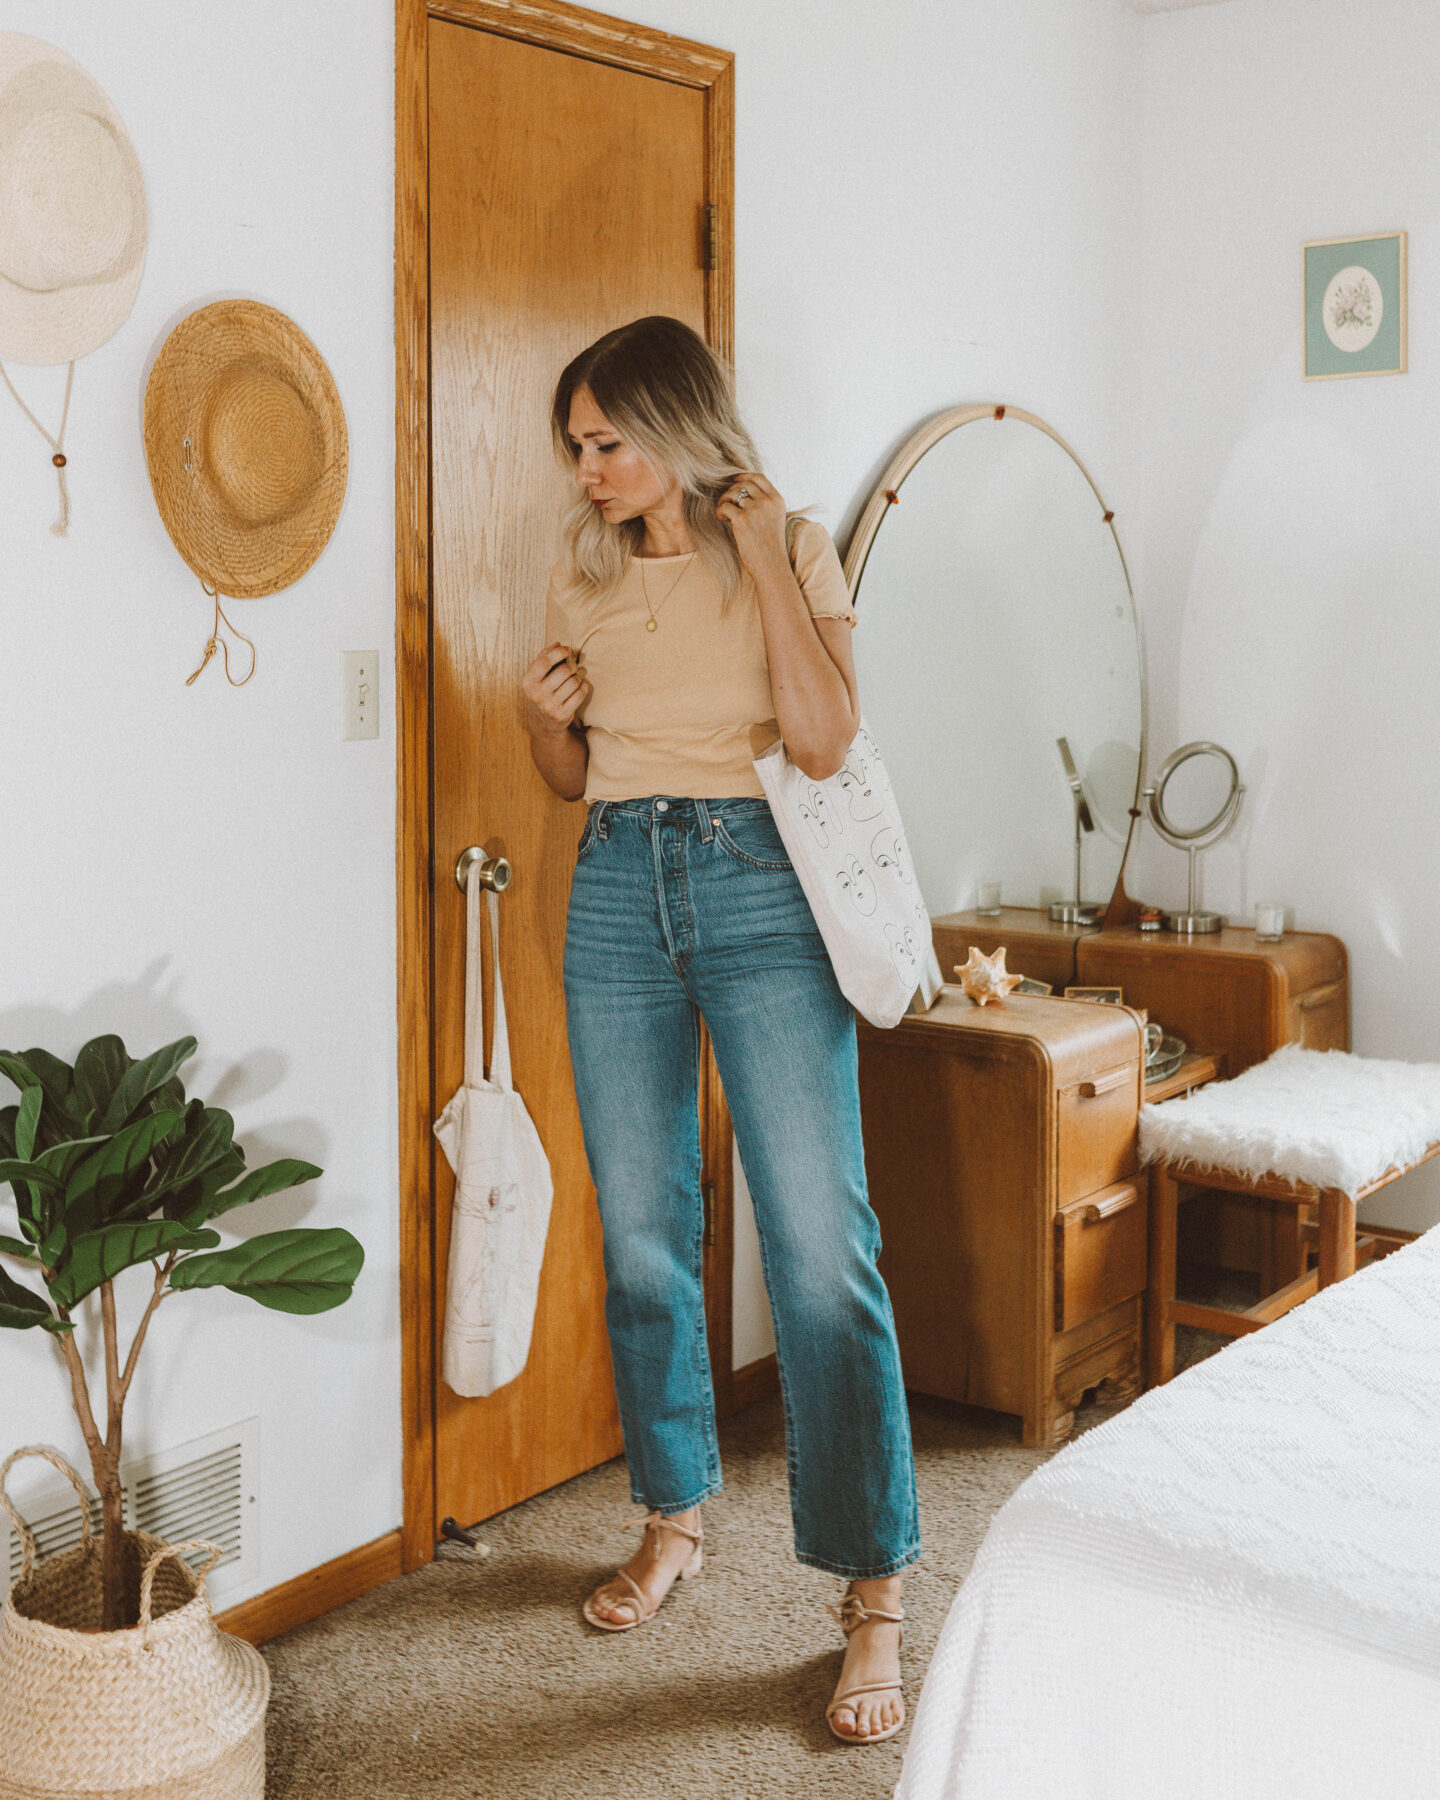 Summer Outfits: A Week of Warm Weather Outfit Ideas